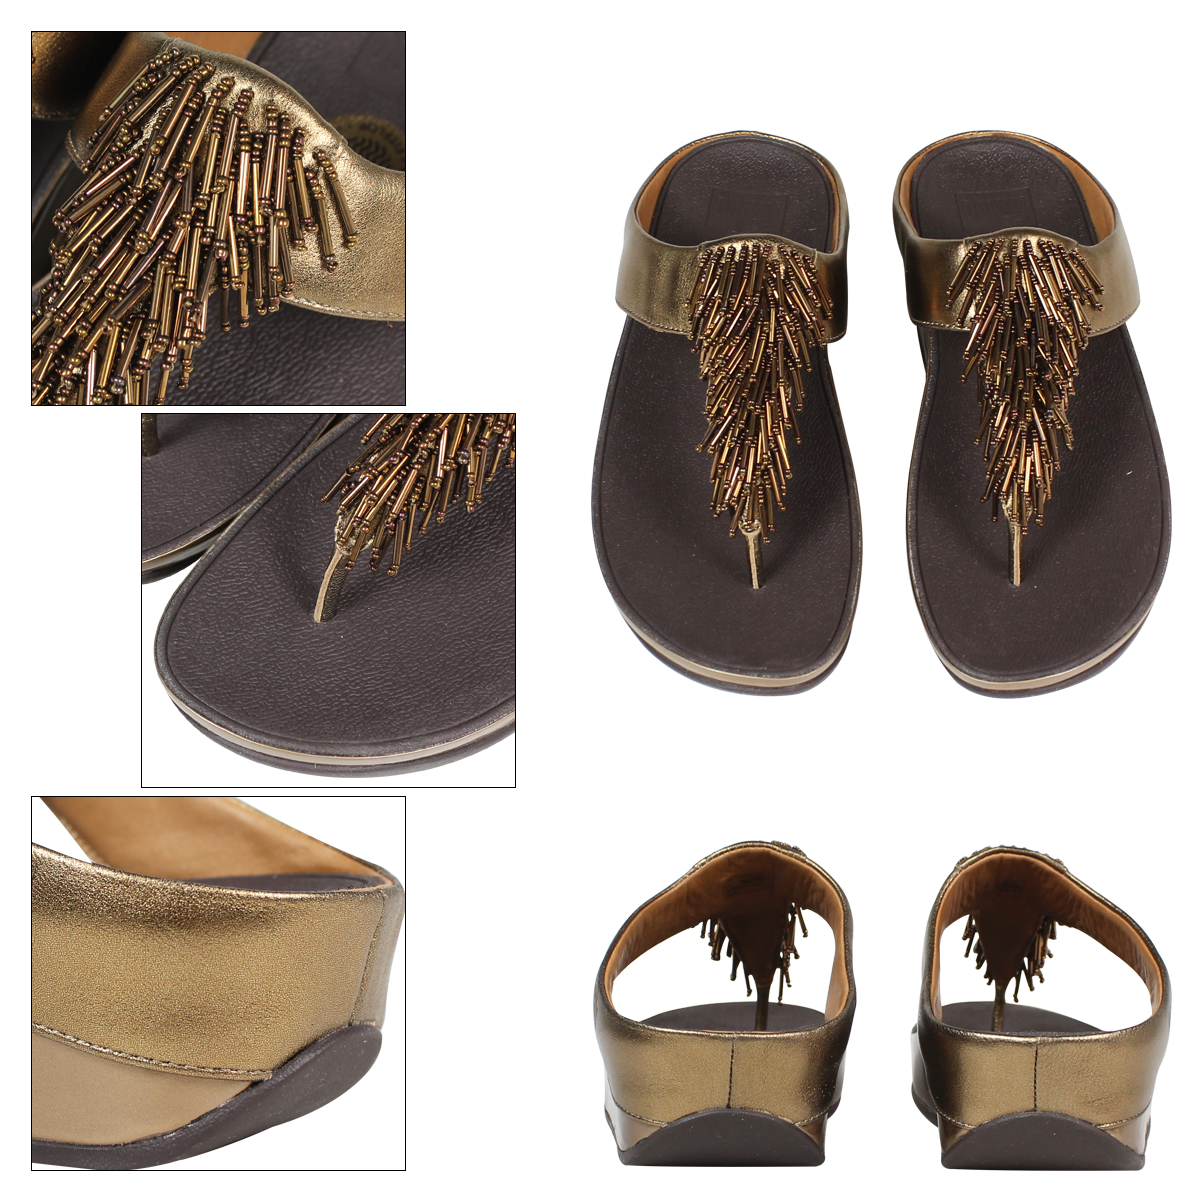 37fc69dfdcf569 Fit flops FitFlop women s CHA CHA Cha Cha  bronze  patent leather SANDAL  336  3   17 new in stock   regular